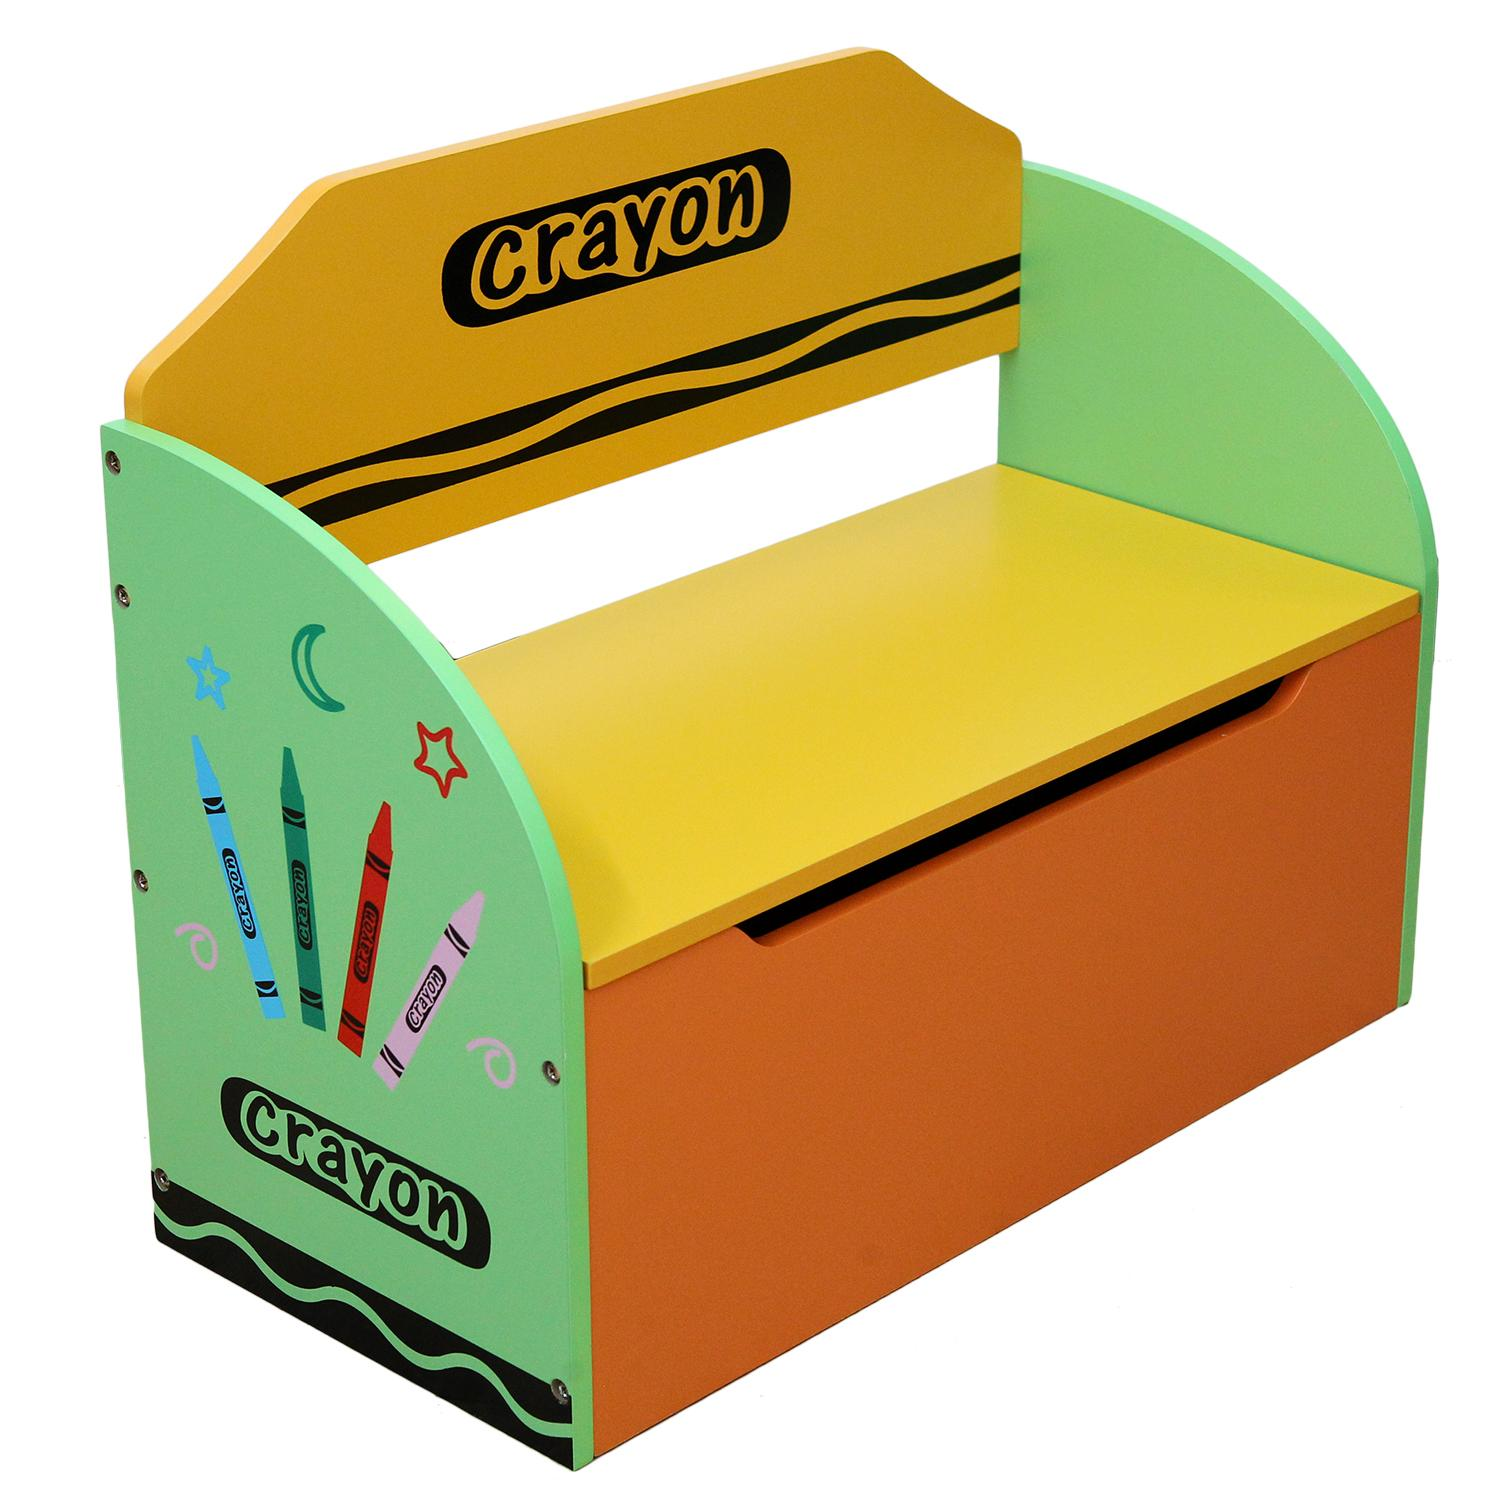 Kiddi Style Childrens Wooden Toy Storage Box and Bench ...